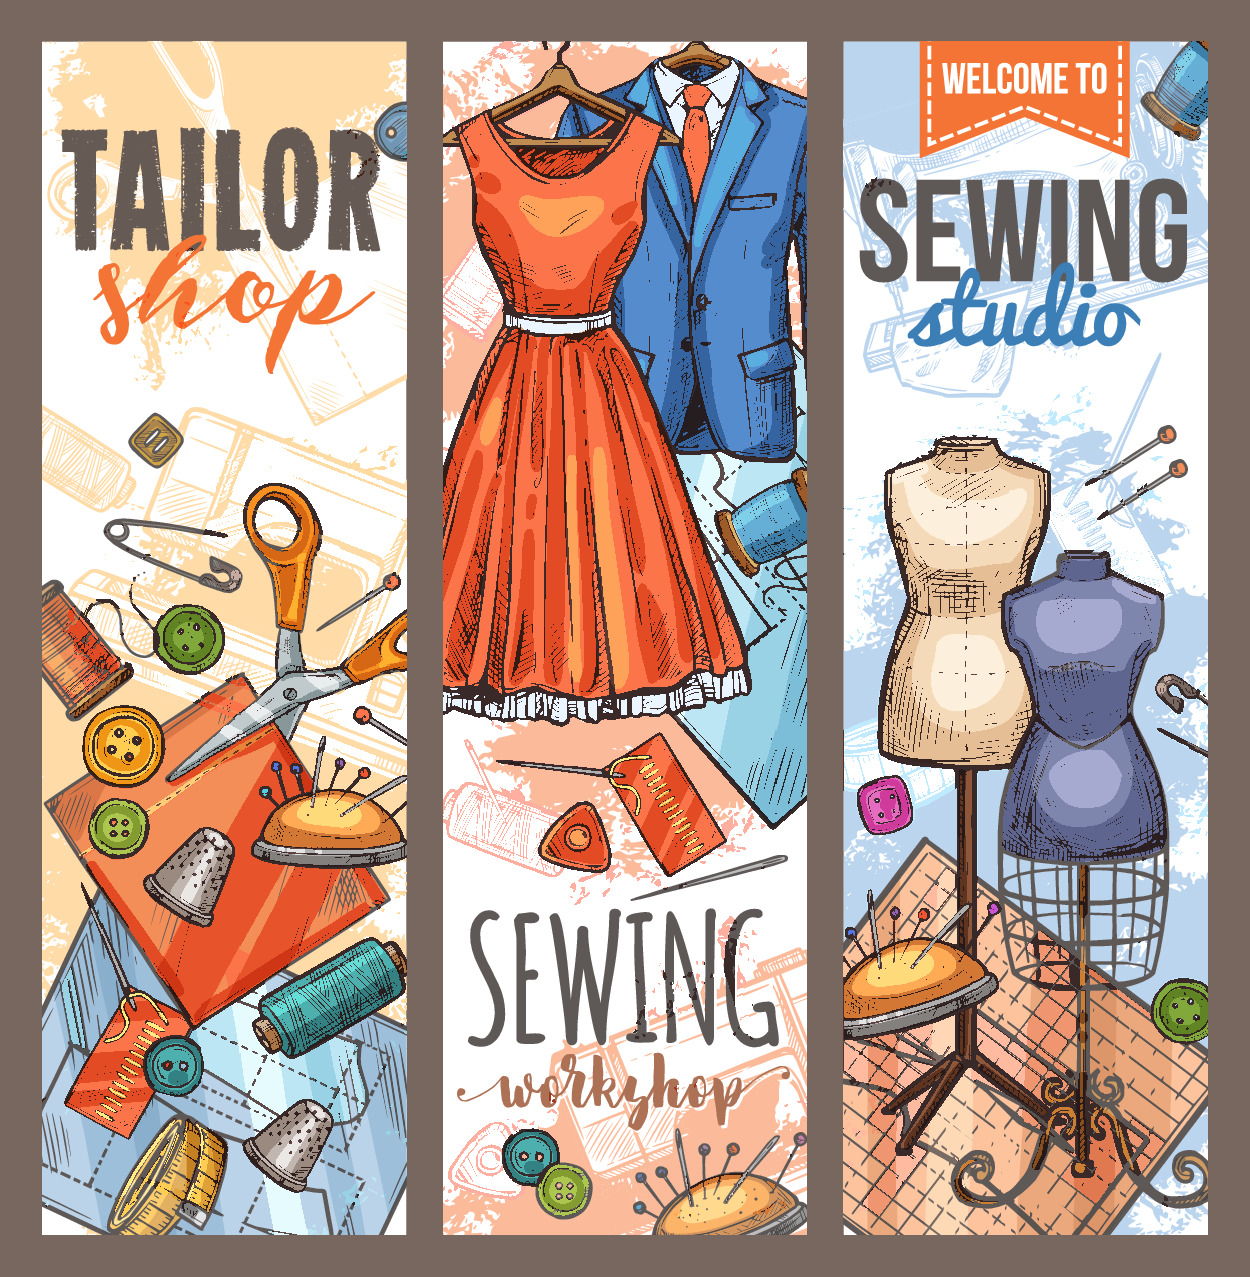 Patchwork, Quilting and Sewing Workshops and Classes here at From Rags To Stitches